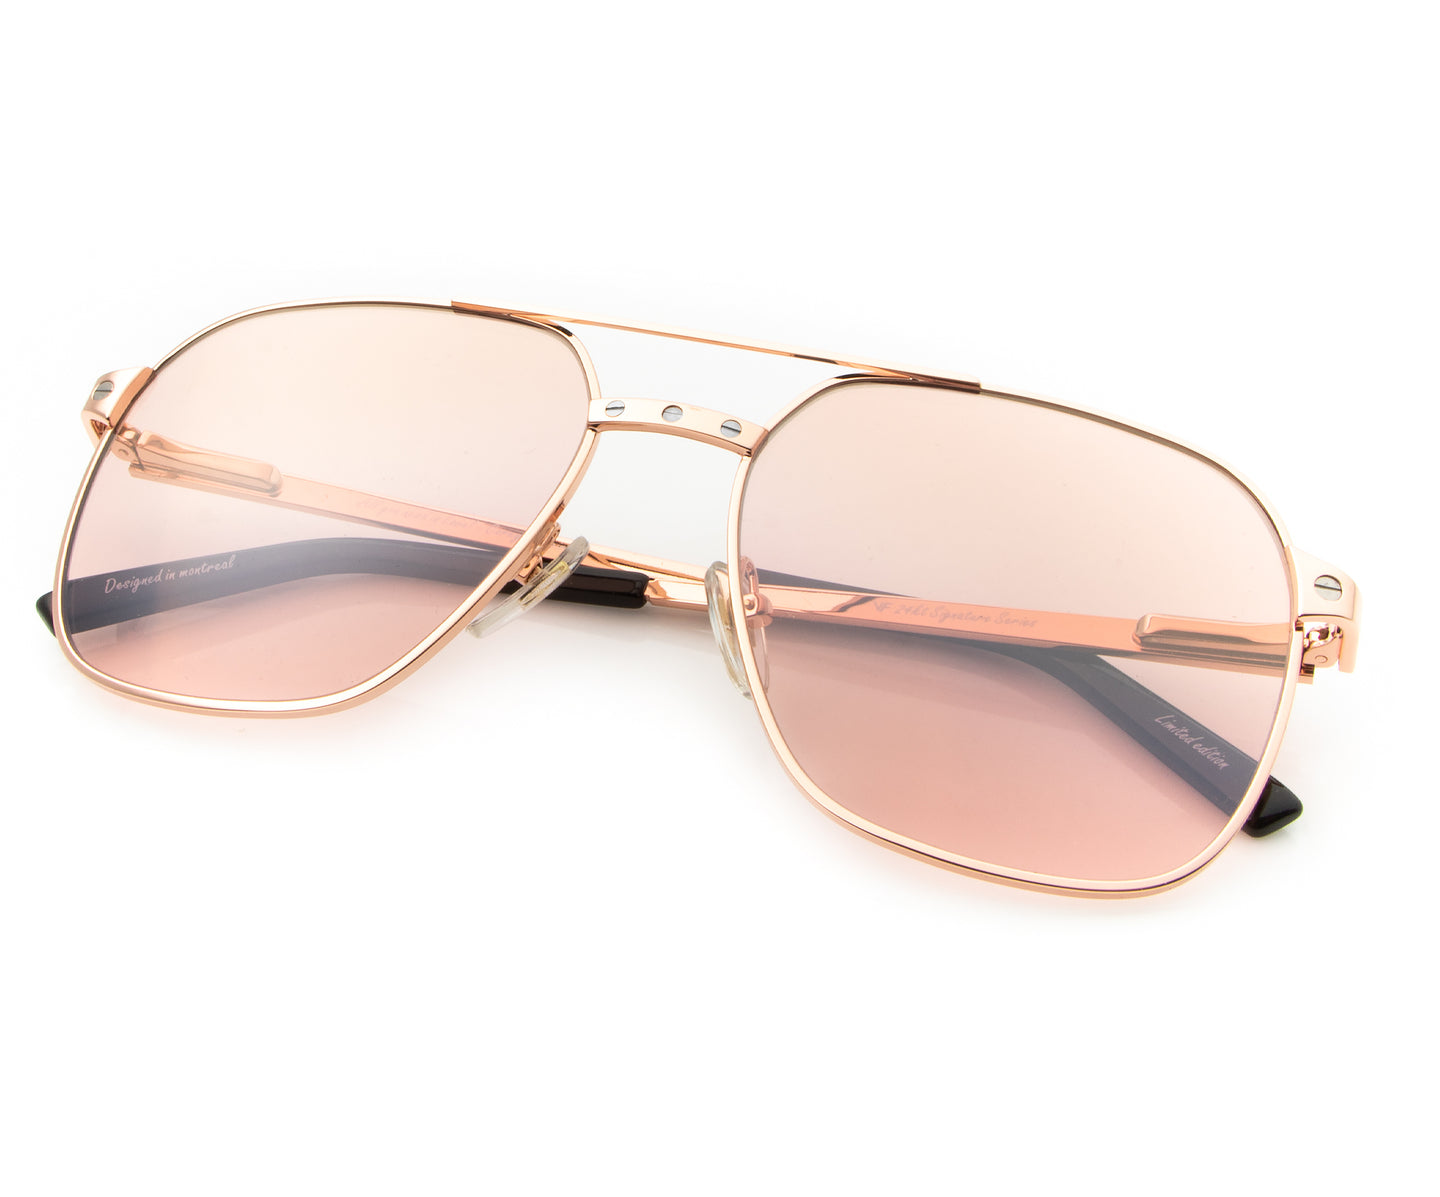 Love Collection: XL 24KT Rose Gold (Dusty Rose), VF Masterpiece , glasses frames, eyeglasses online, eyeglass frames, mens glasses, womens glasses, buy glasses online, designer eyeglasses, vintage sunglasses, retro sunglasses, vintage glasses, sunglass, eyeglass, glasses, lens, vintage frames company, vf